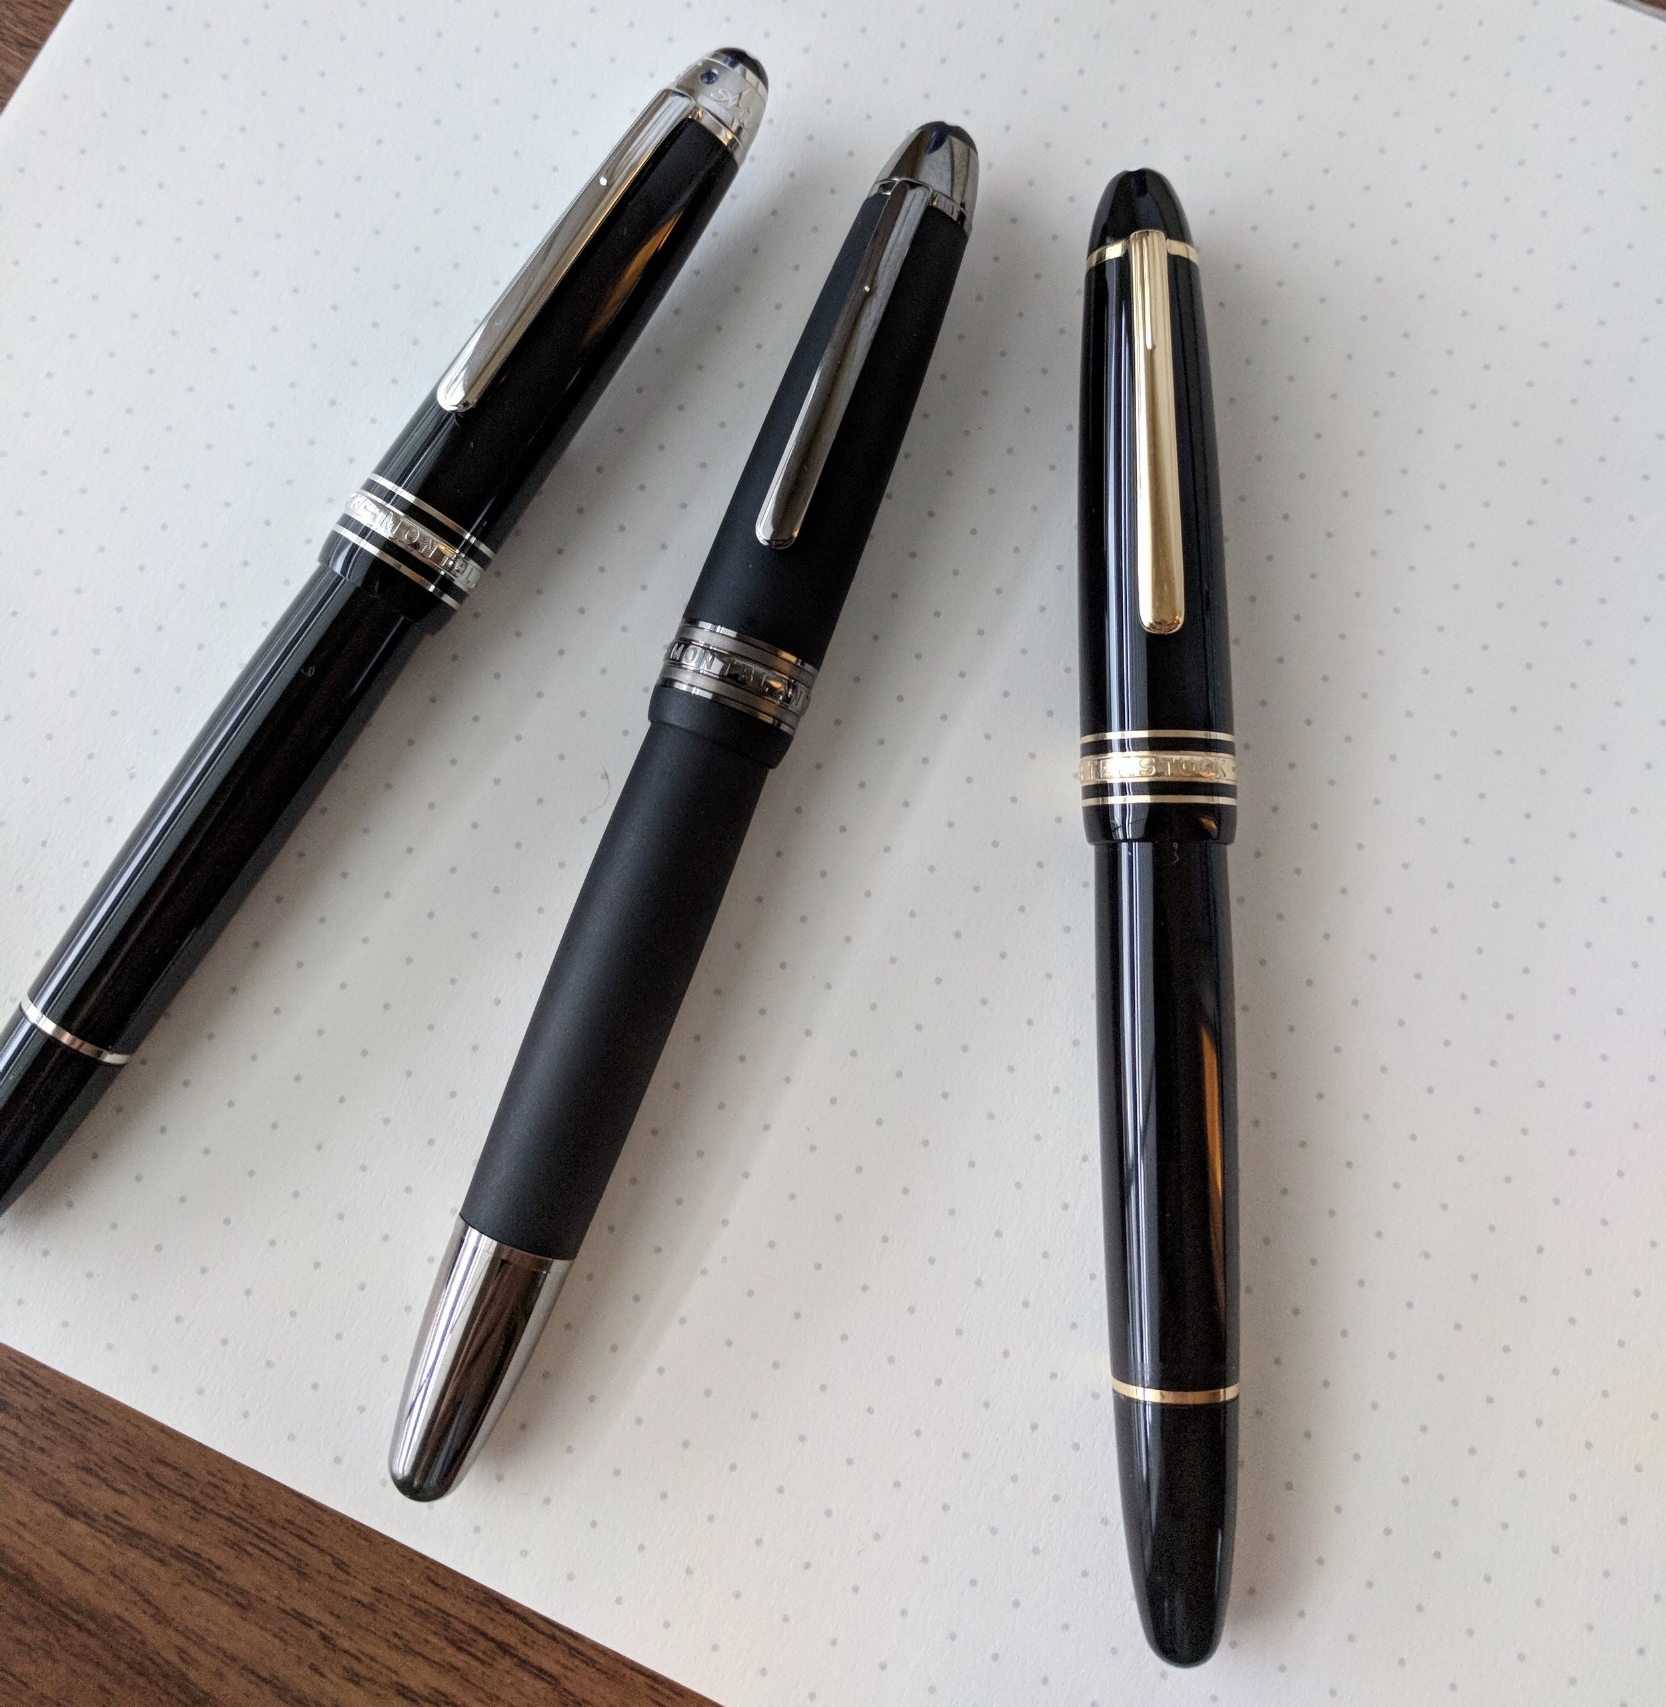 From Left: The Montblanc 146 UNICEF Special Edition; the Montblanc 146 Ultra Black, and my standard 146 (1980s era).